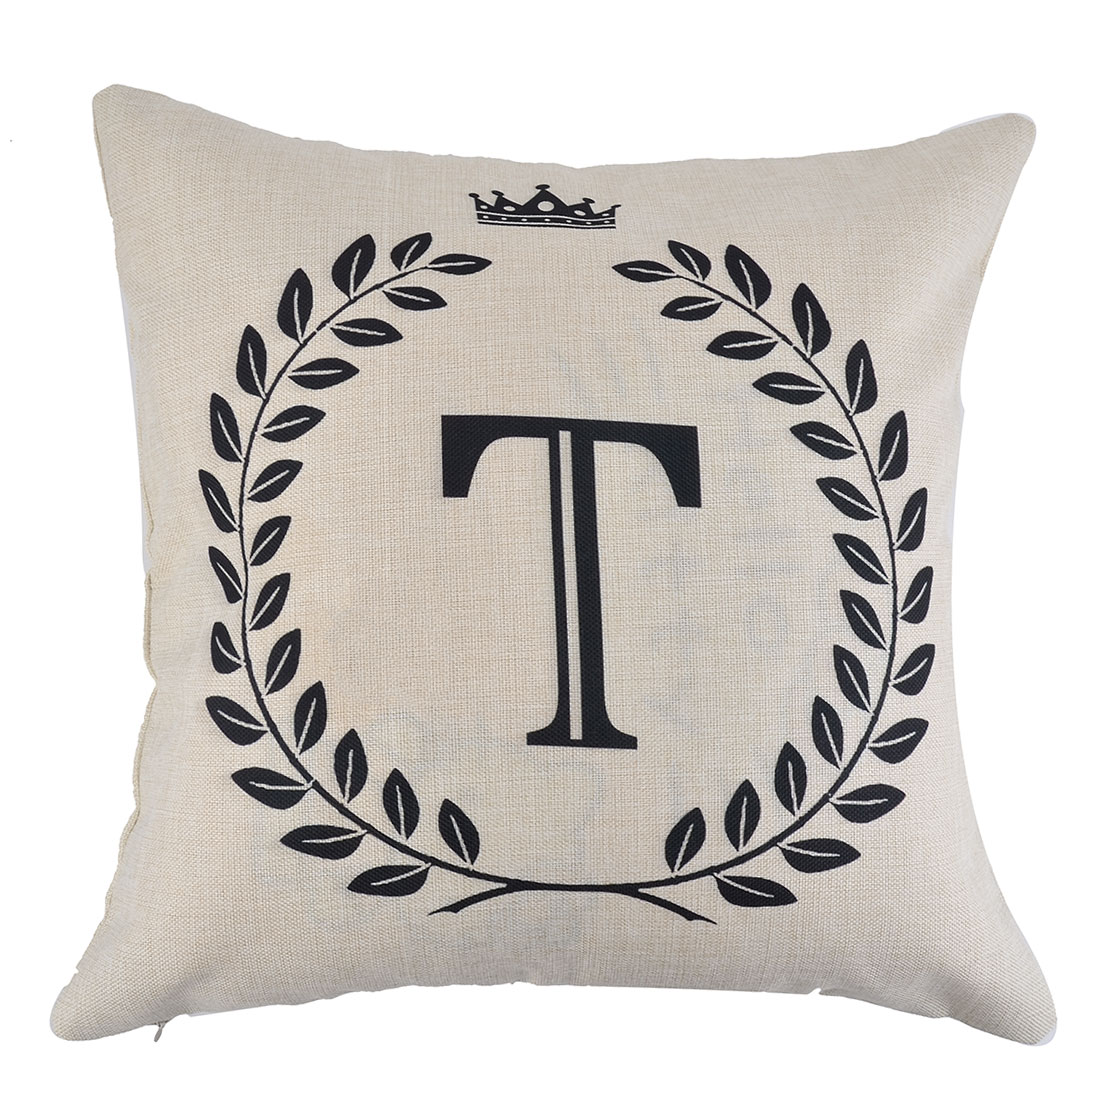 Home Cotton Linen Letter T Pattern Zippered Pillow Cushion Cover 18 x 18 Inches